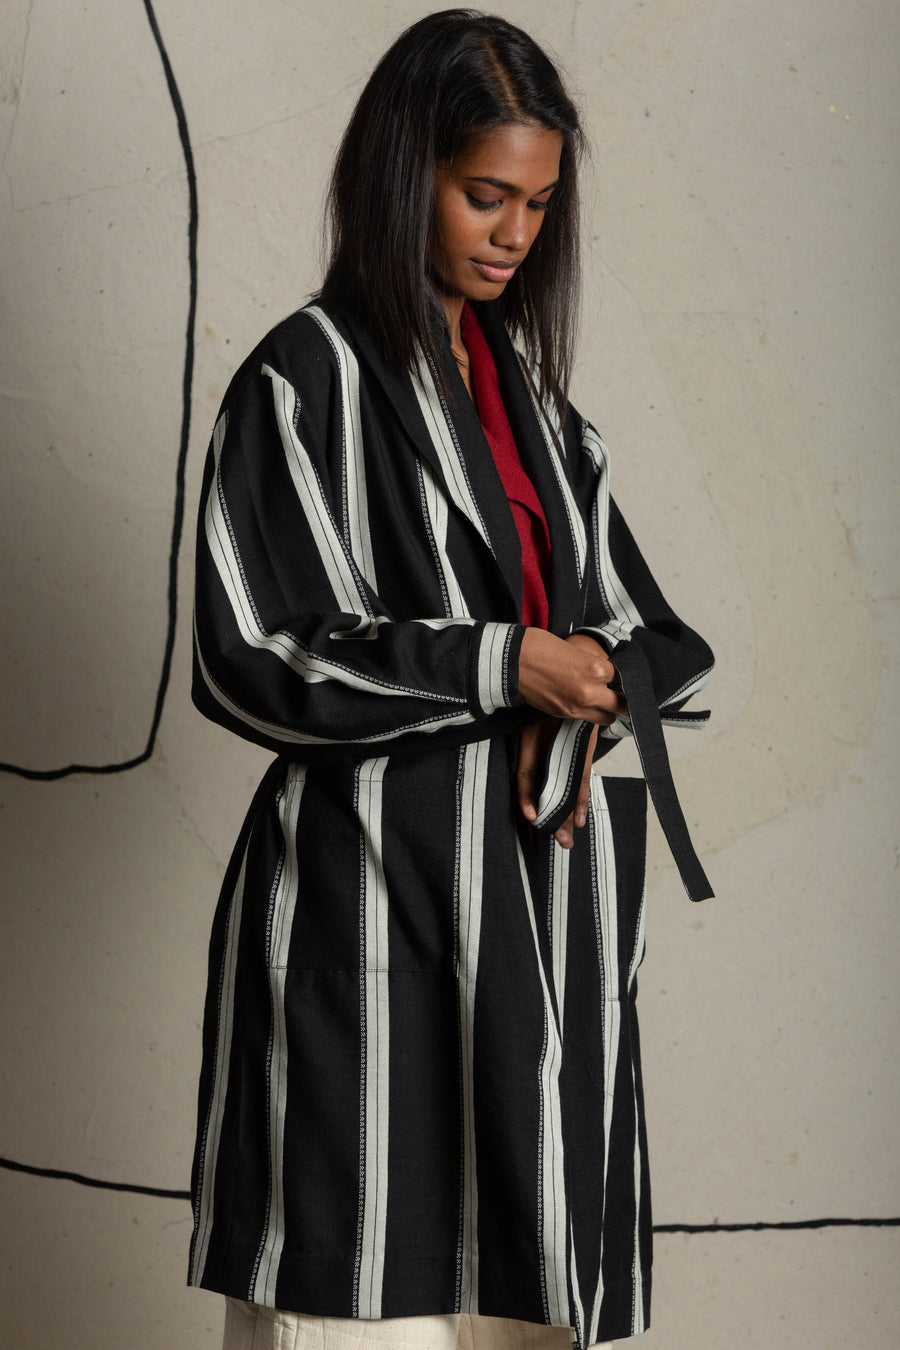 Striped tie-up jacket - Ethical made fashion - onlyethikal